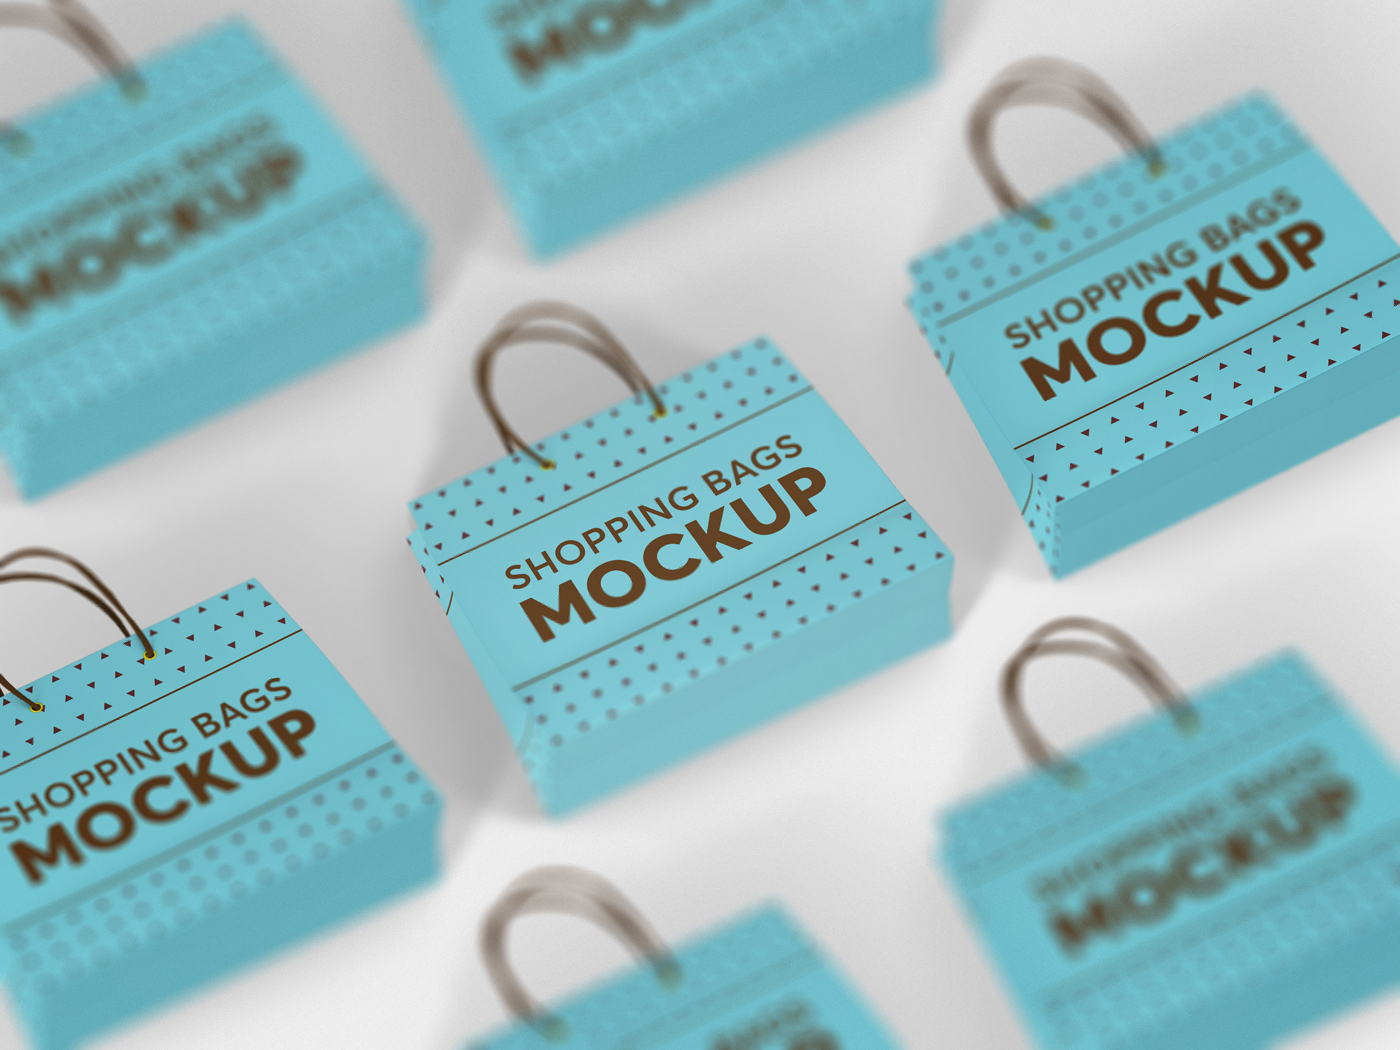 Shopping Bag Mockups V2 example image 17